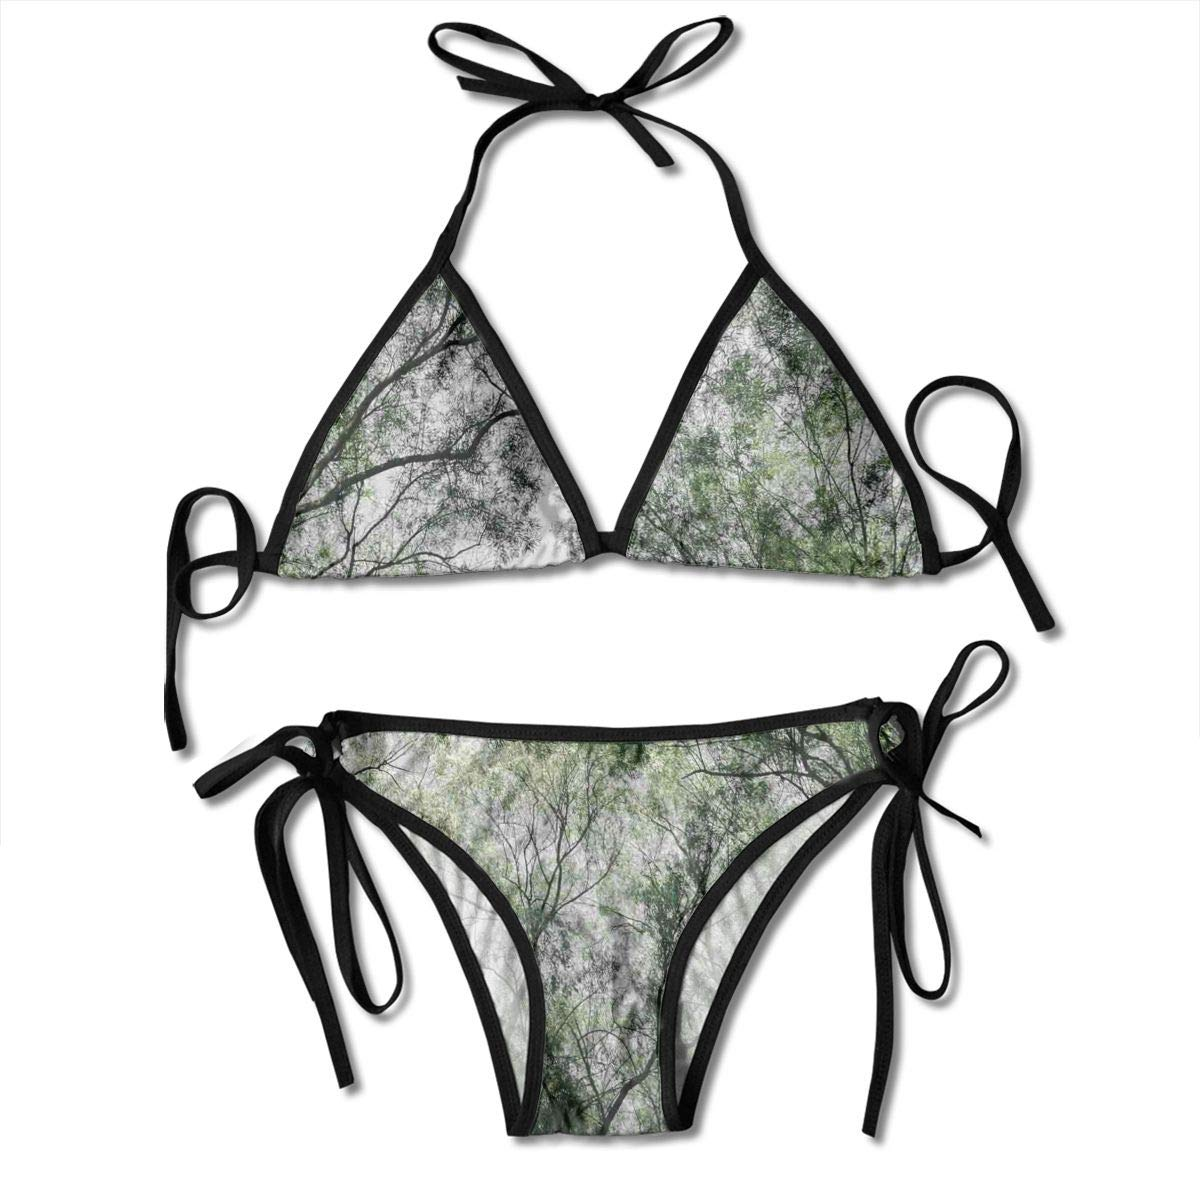 9744caf0e91be6 Amazon.com: Women's Swimsuit Two Pieces Bikini Set, Tree Branch in Spring  Season Fairy Jungle Growth Nature Look Up Wood Scene,Swimwear Bathing Suits:  ...